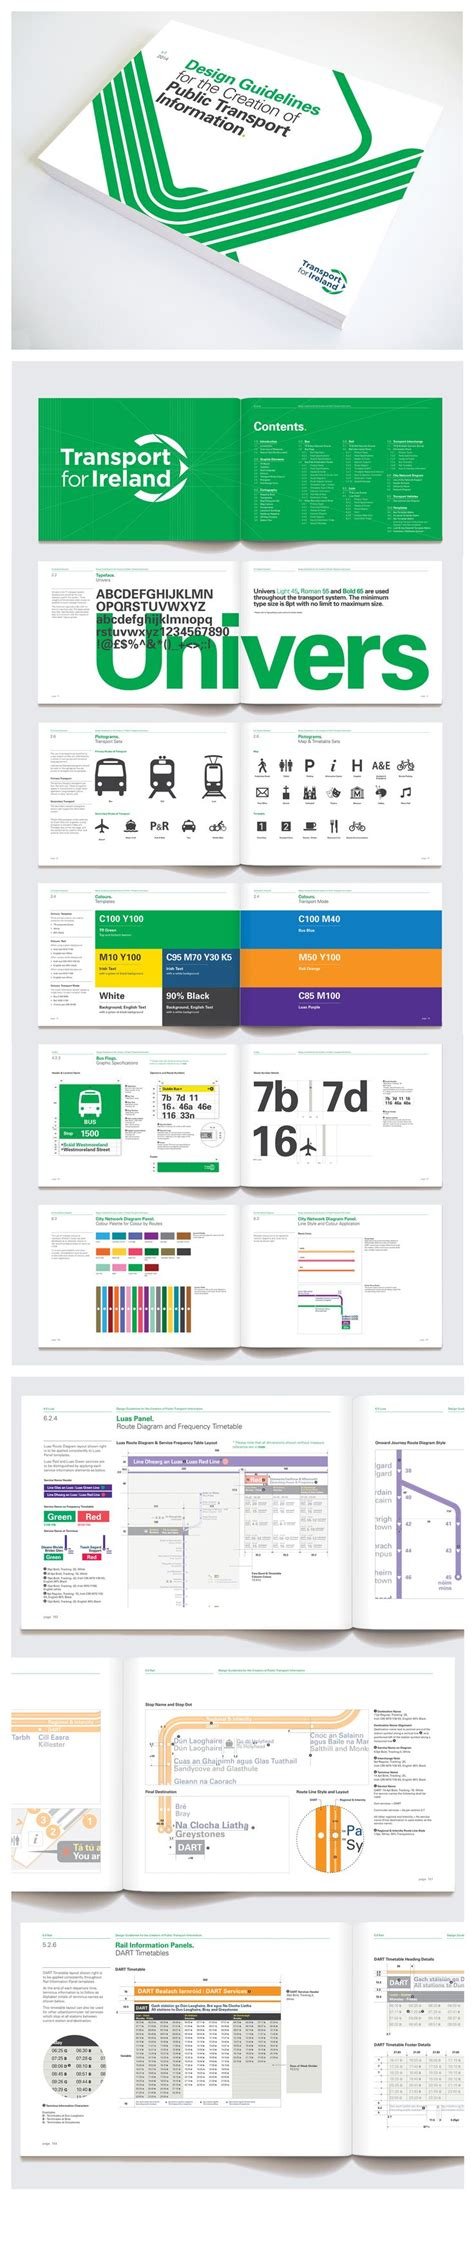 design portfolio guidelines 25 best ideas about brochure cover on pinterest